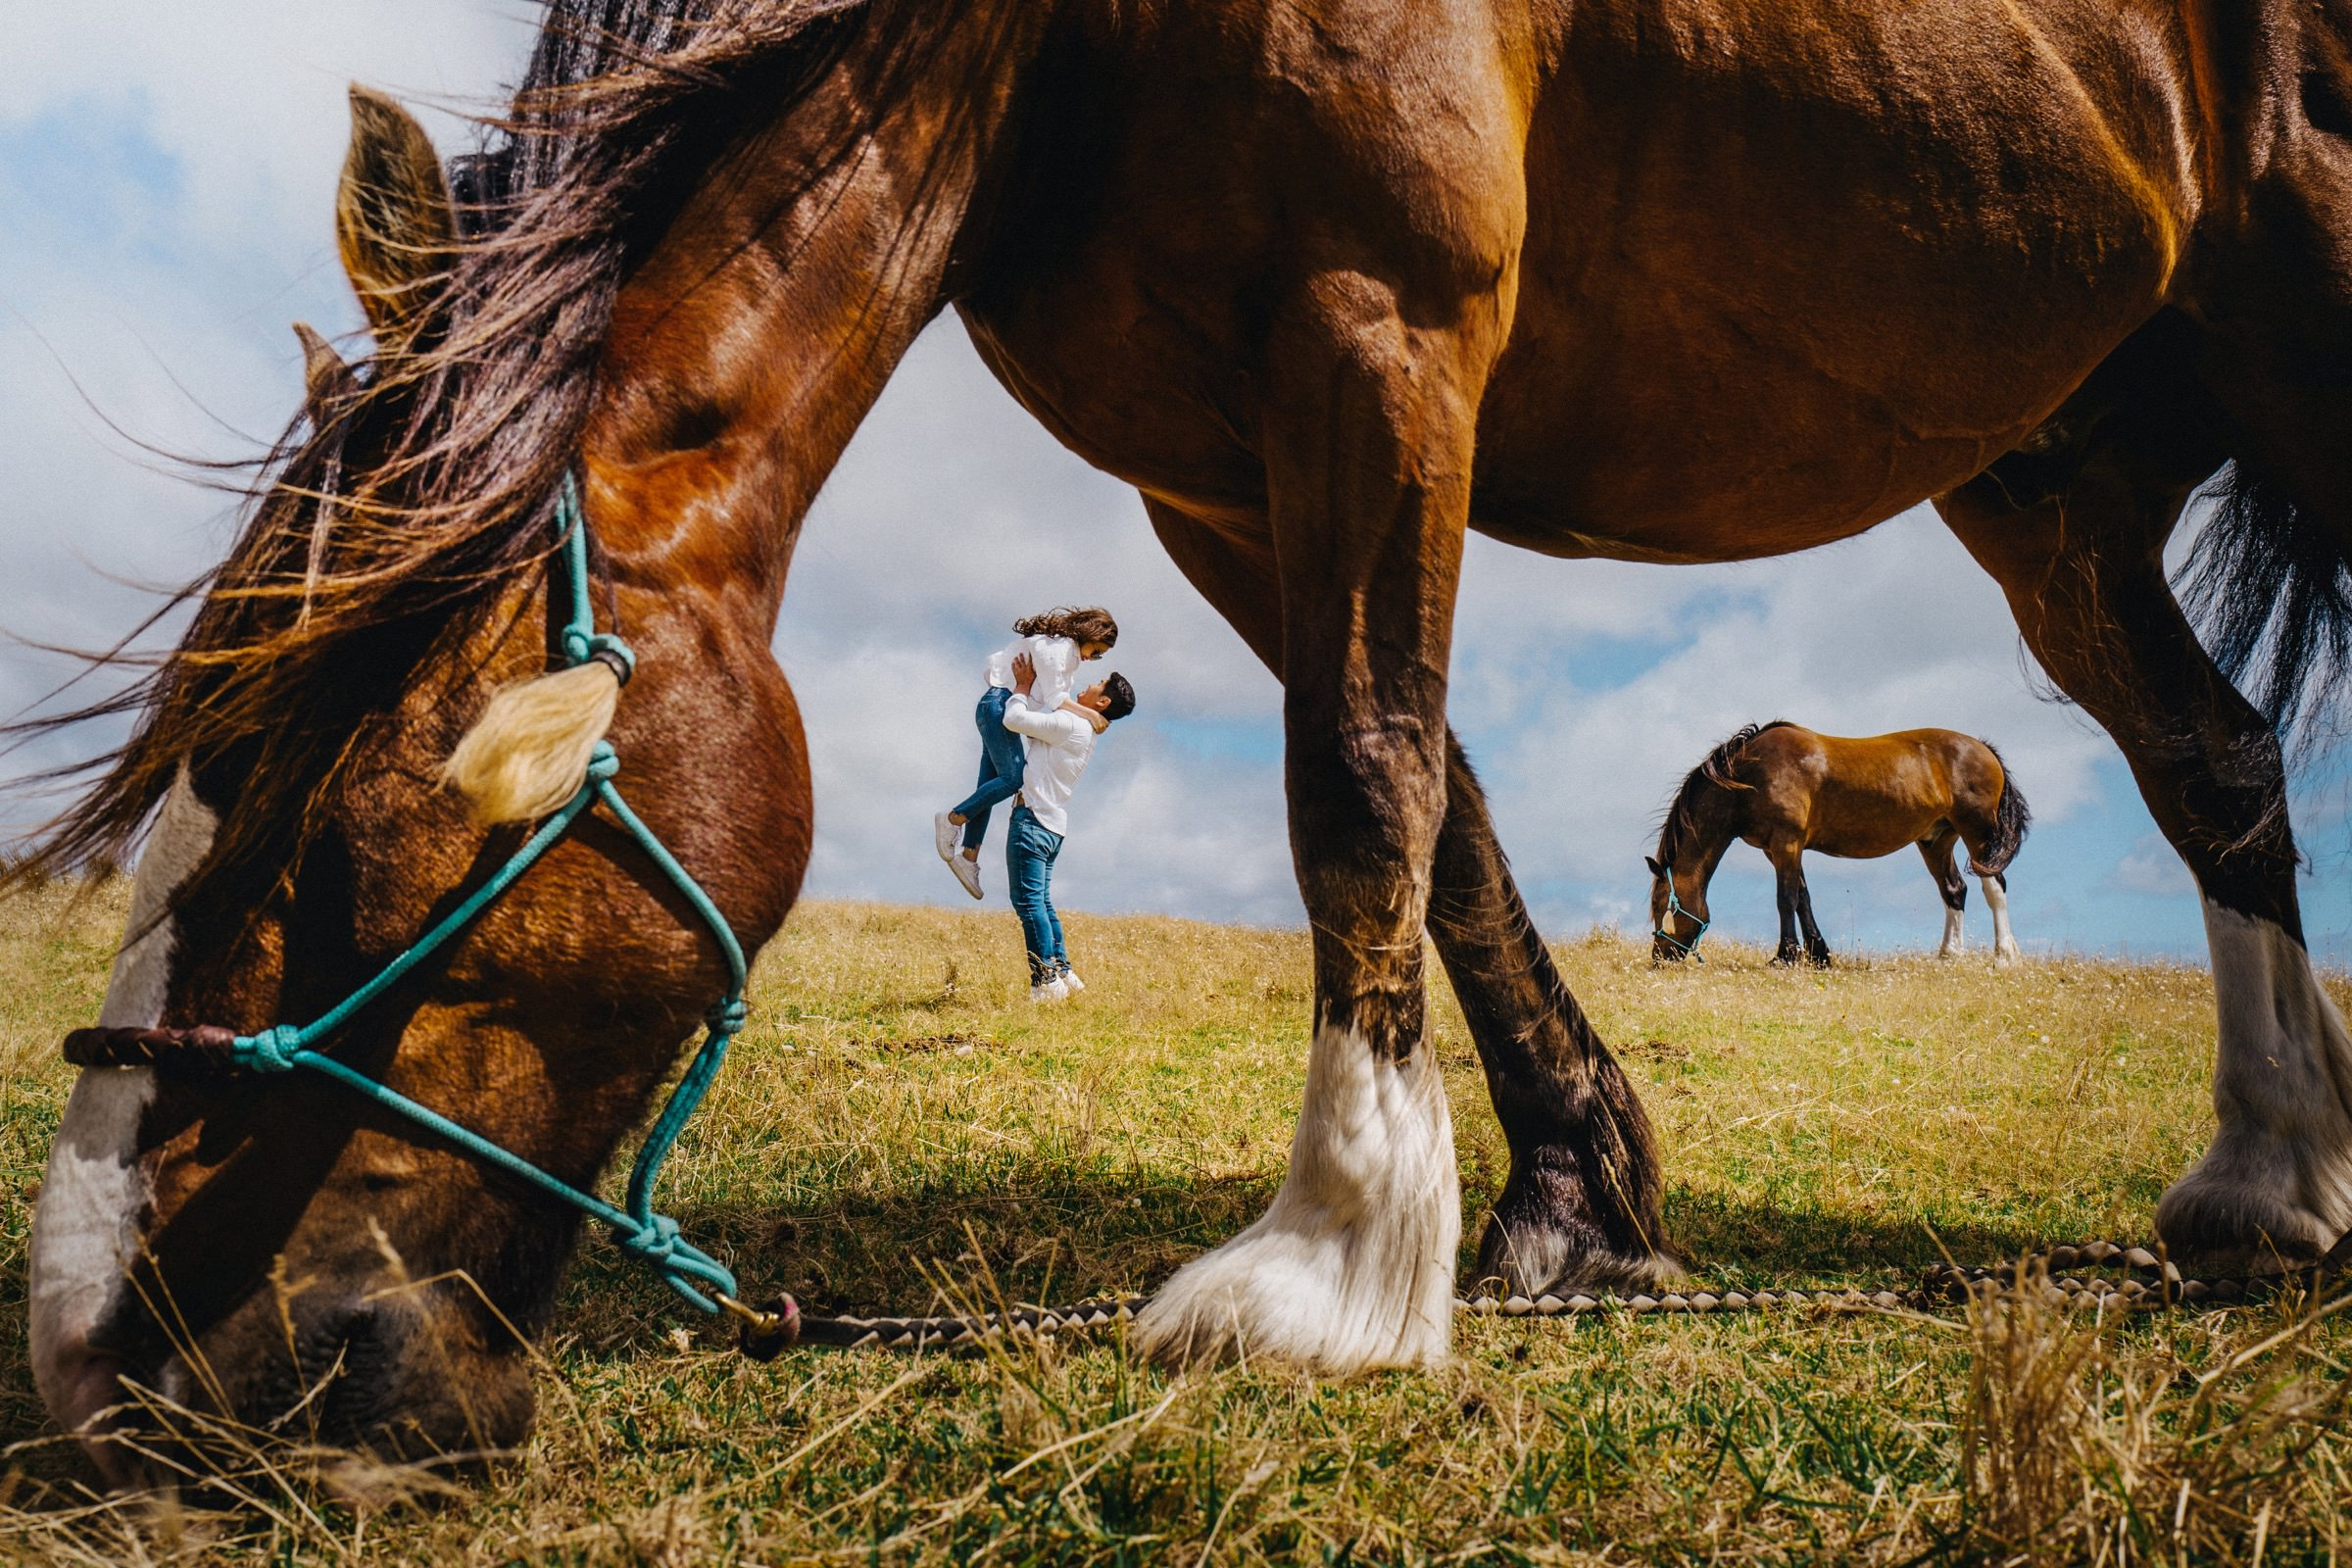 Couple in field with horses - photo by Feztography